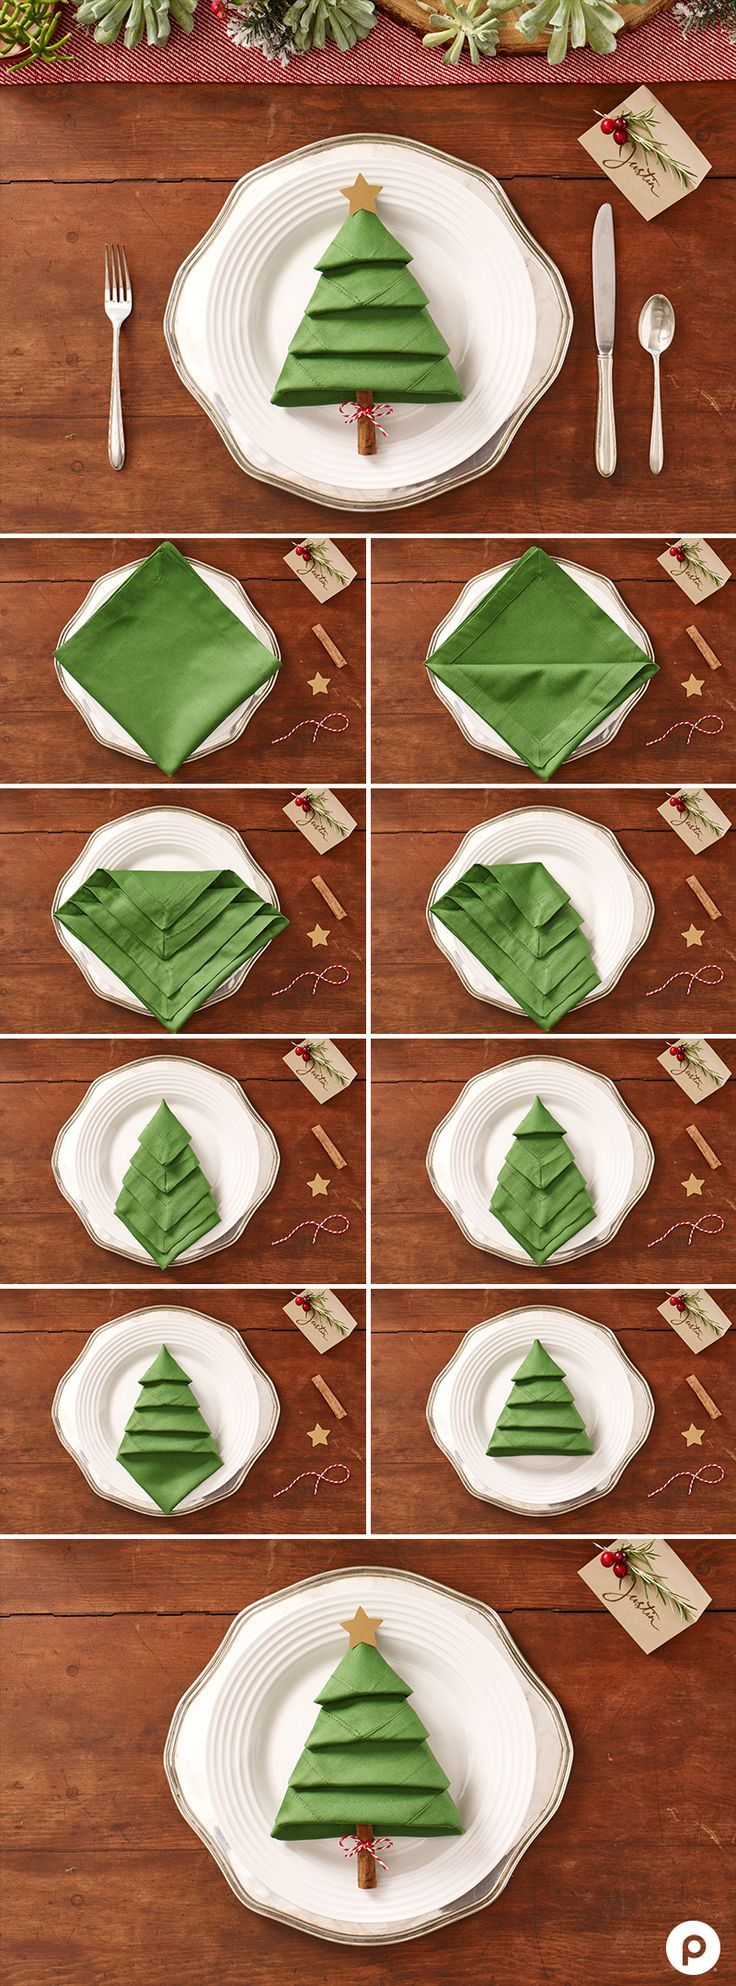 Best 25+ Christmas napkin folding ideas on Pinterest | Napkin ...